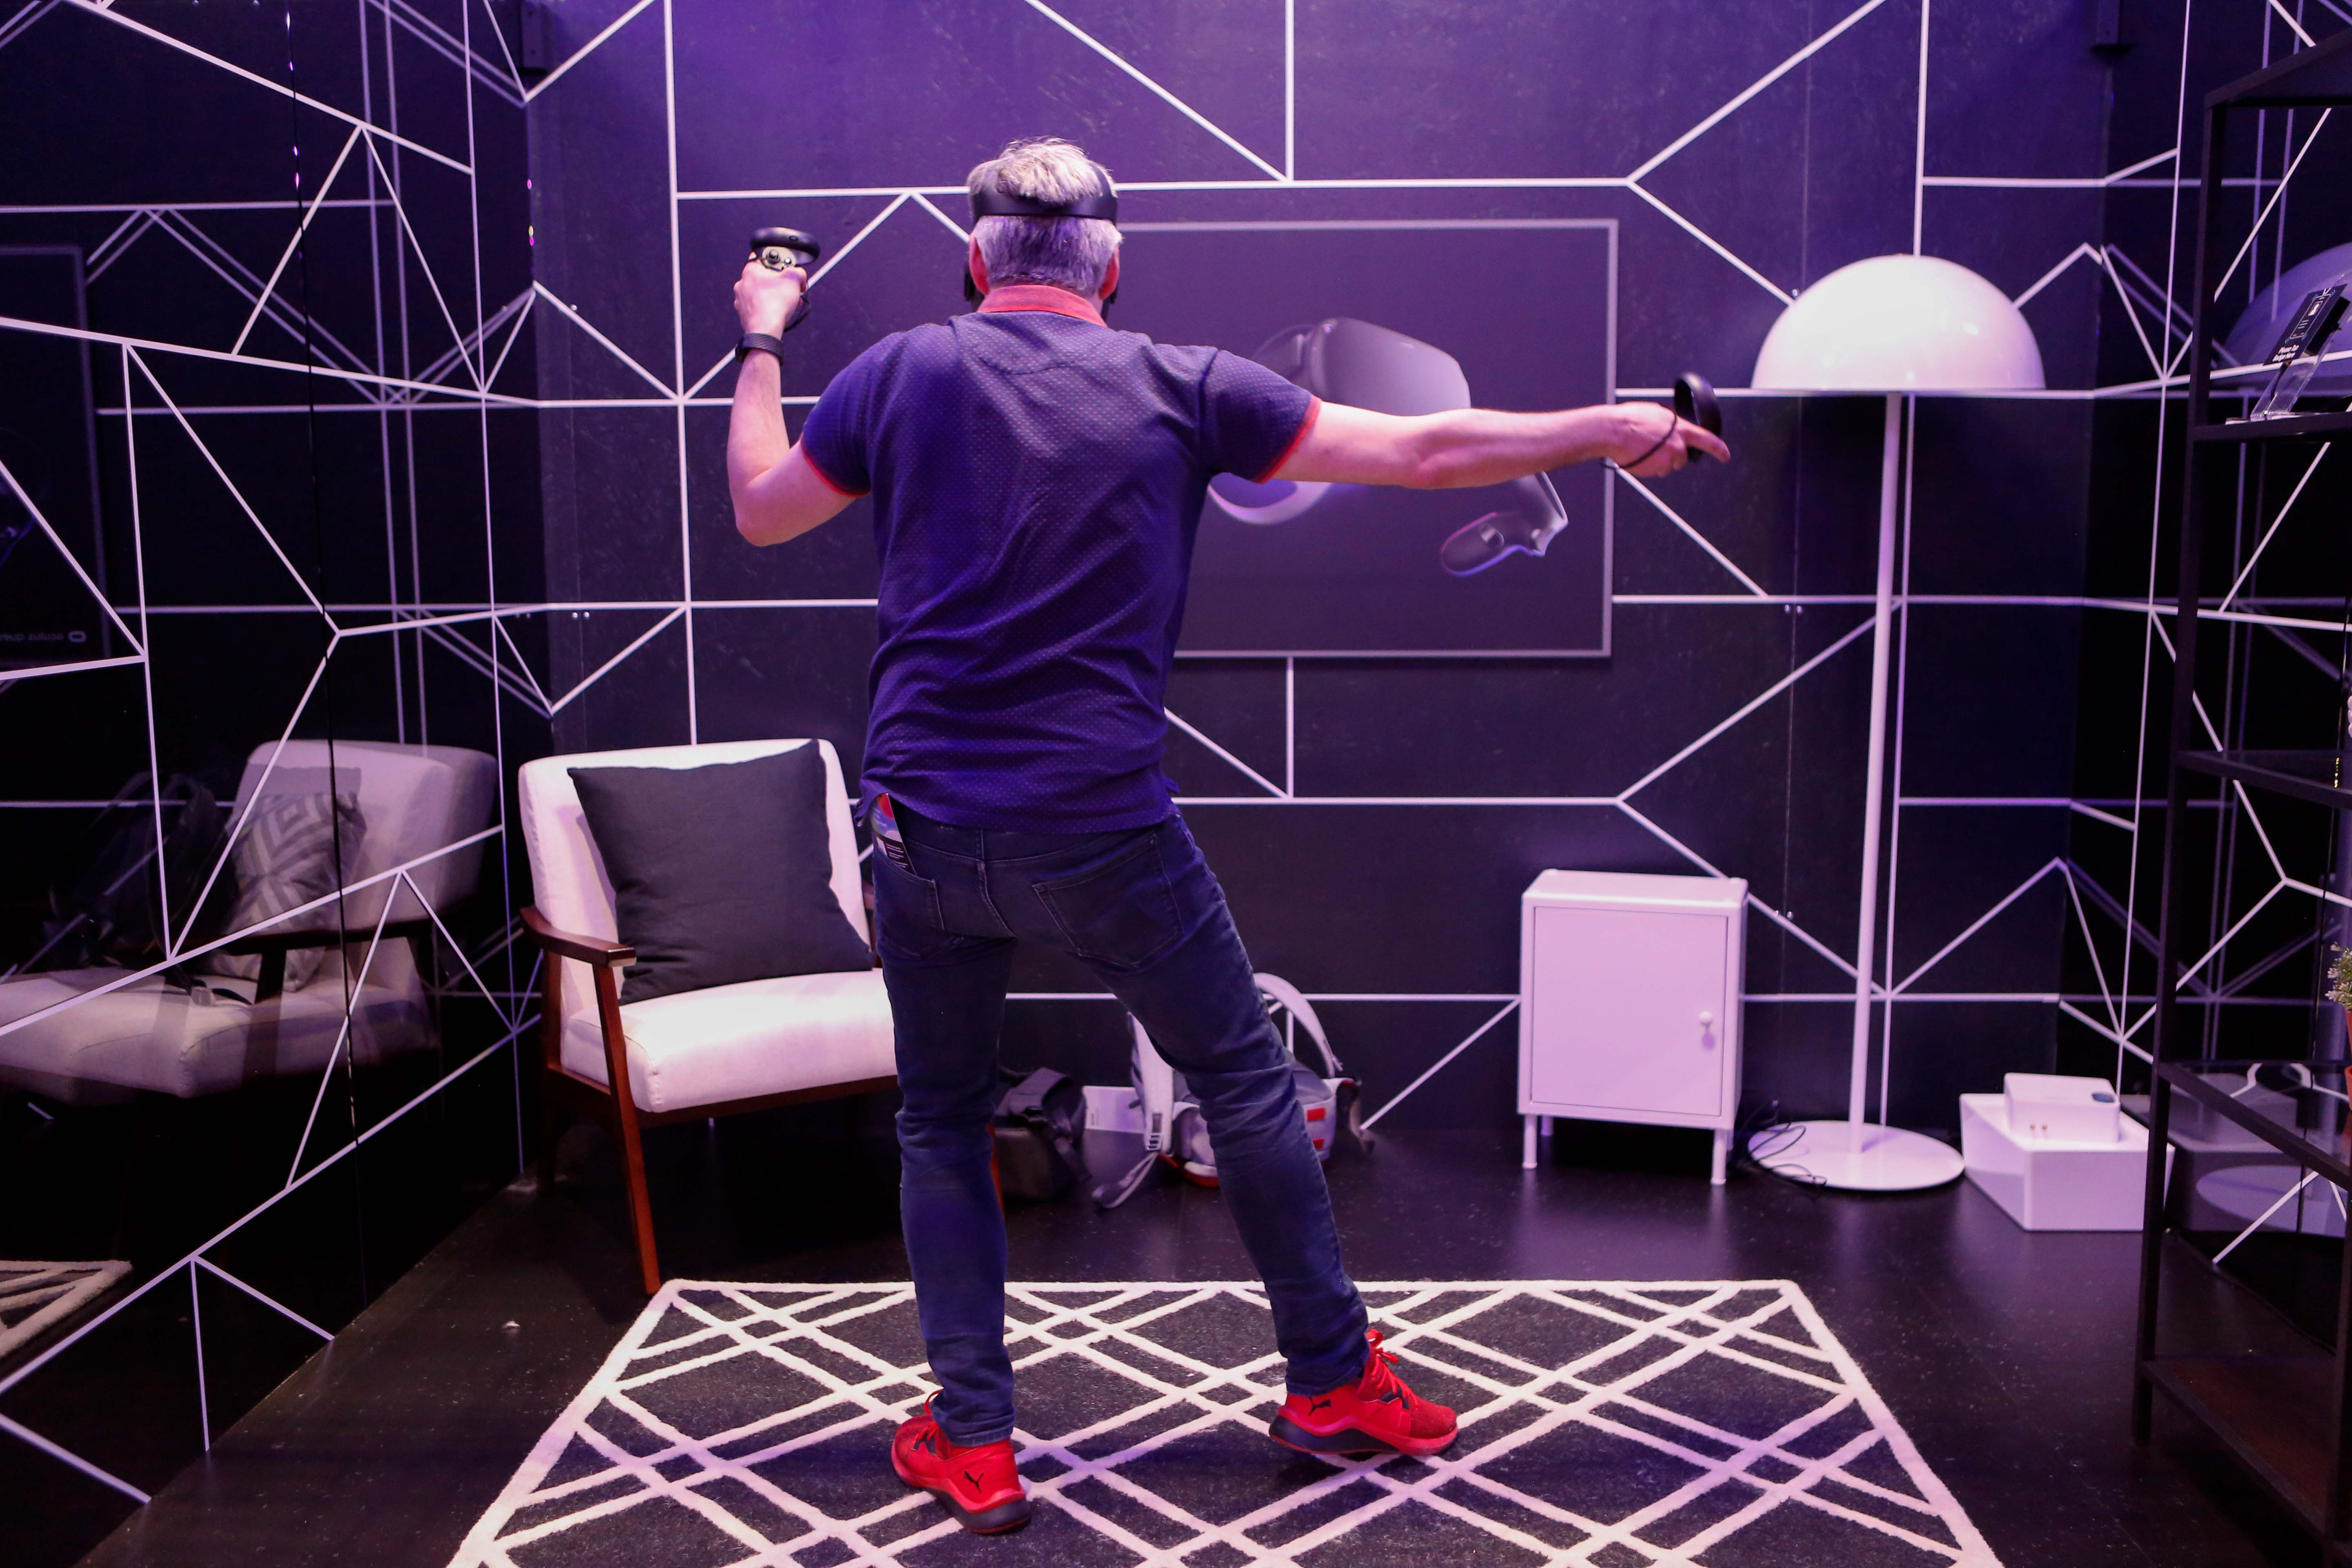 What does it feel like with a virtual reality experience?